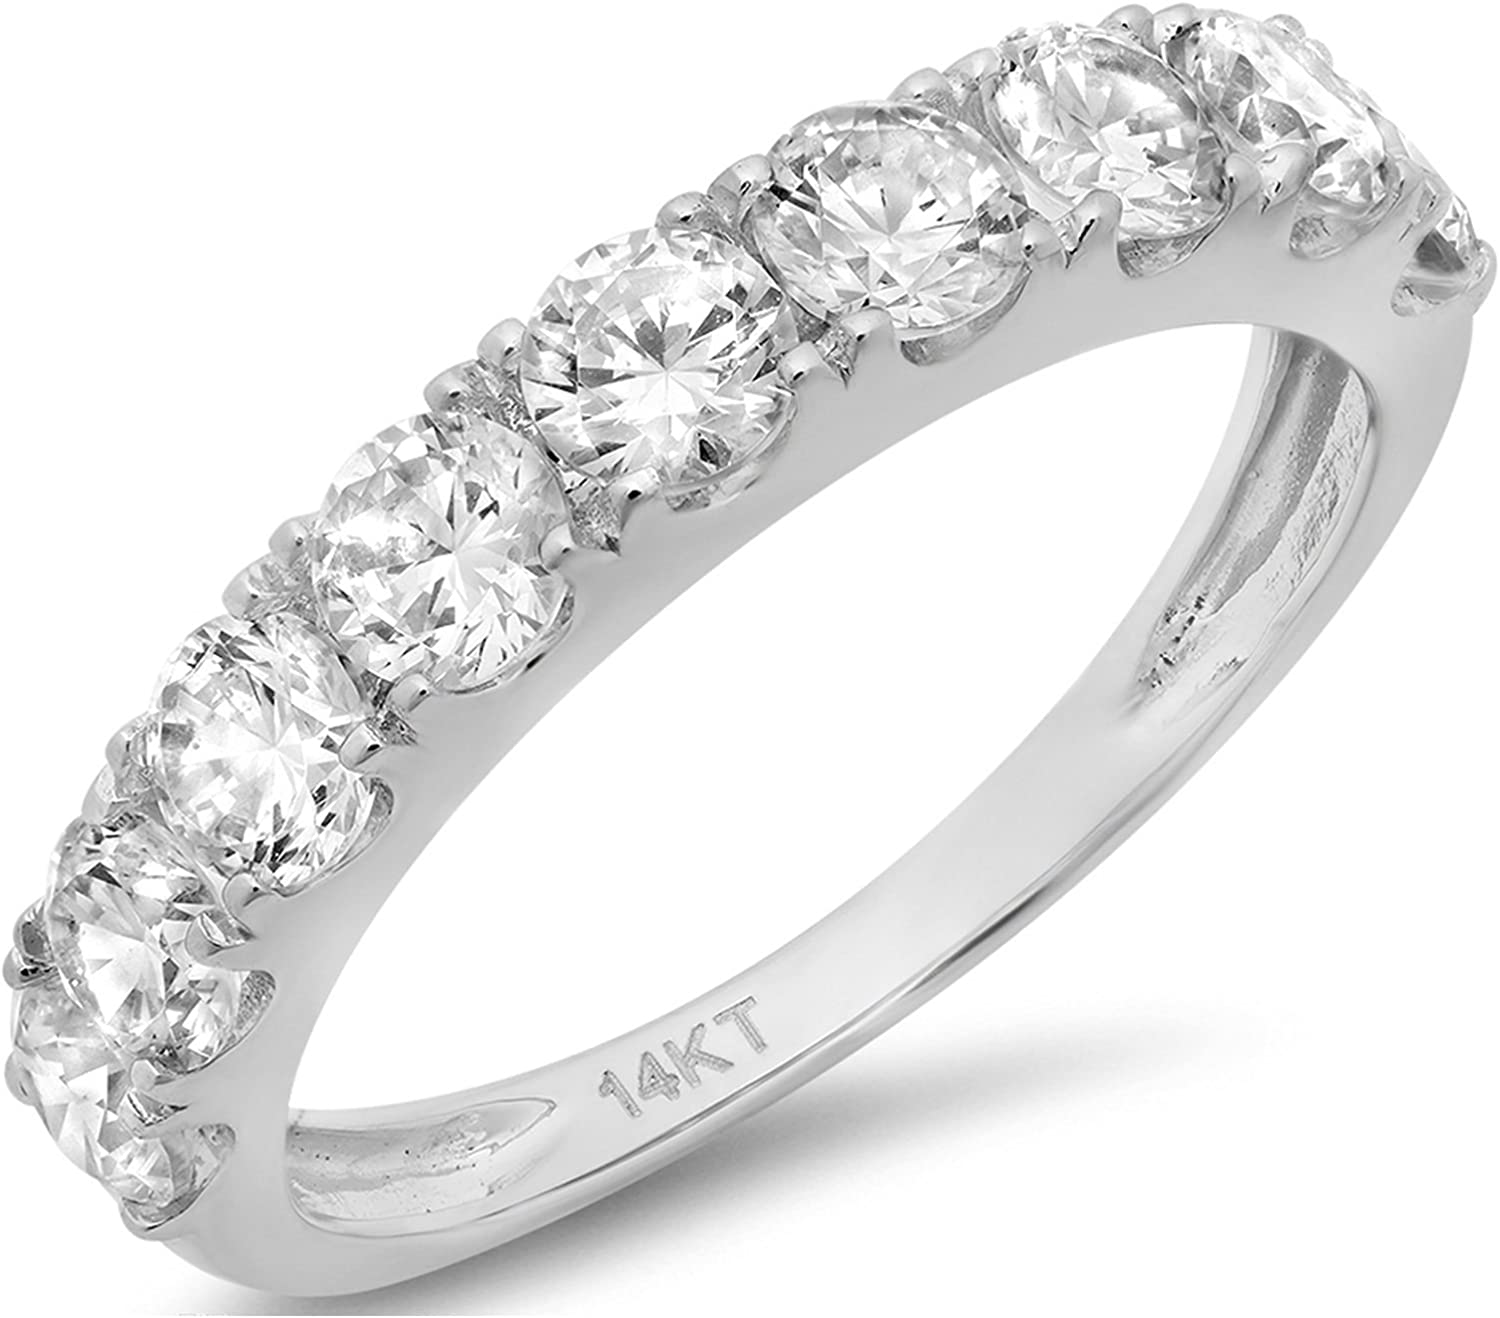 G-H,I2-I3 Size-11.25 1//20 cttw, 3 Diamond Promise Ring in 14K Yellow Gold